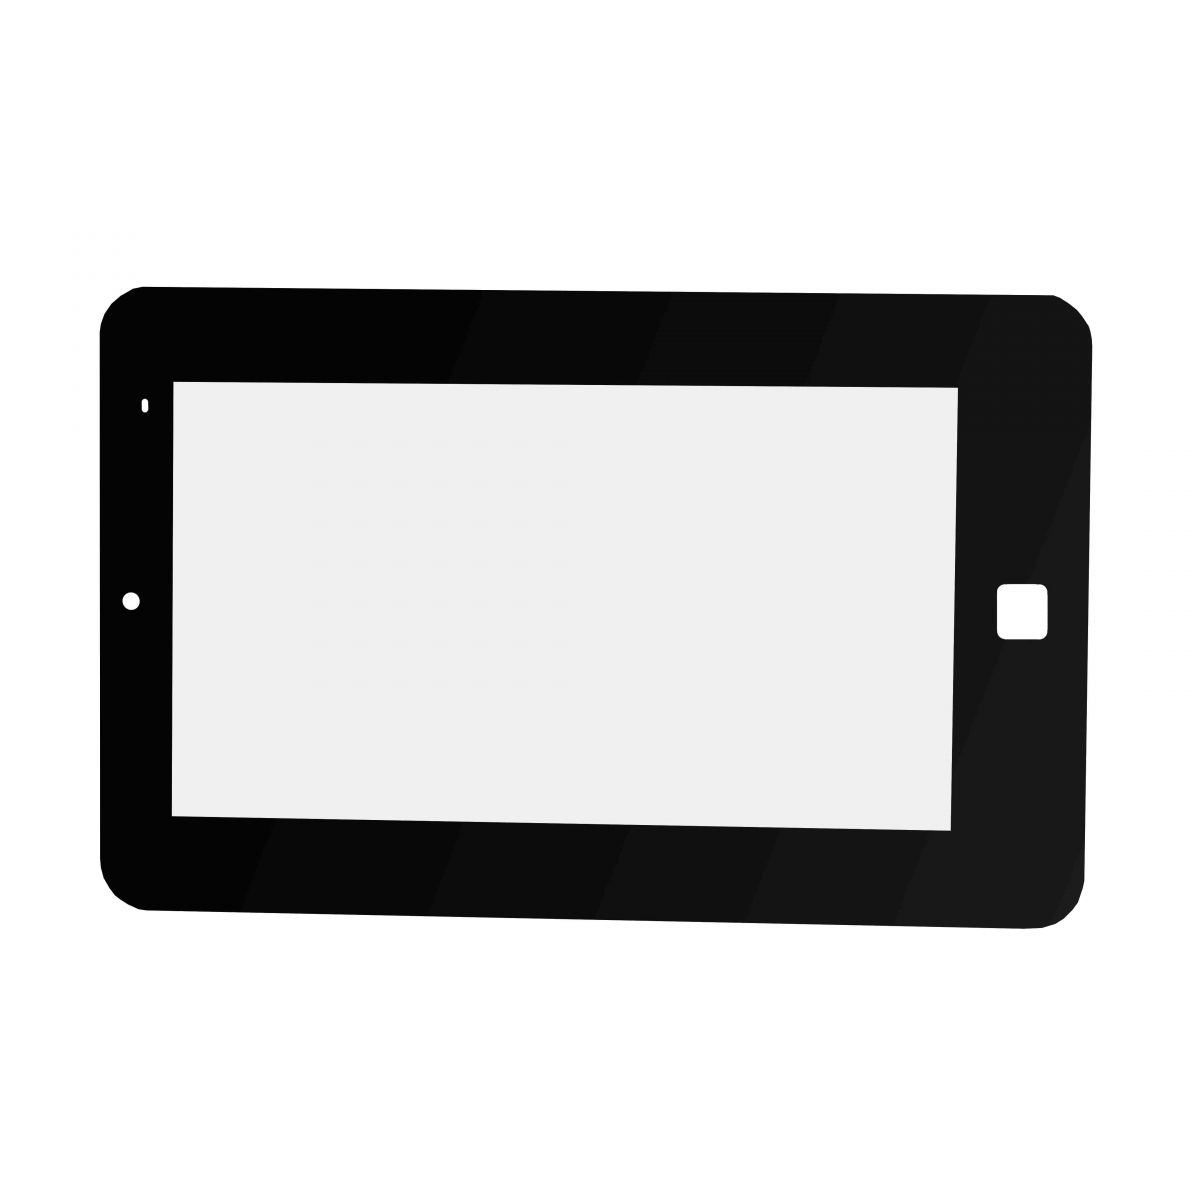 Membrana Plastica p/ Touch Tablet 7´ Home Quadrado